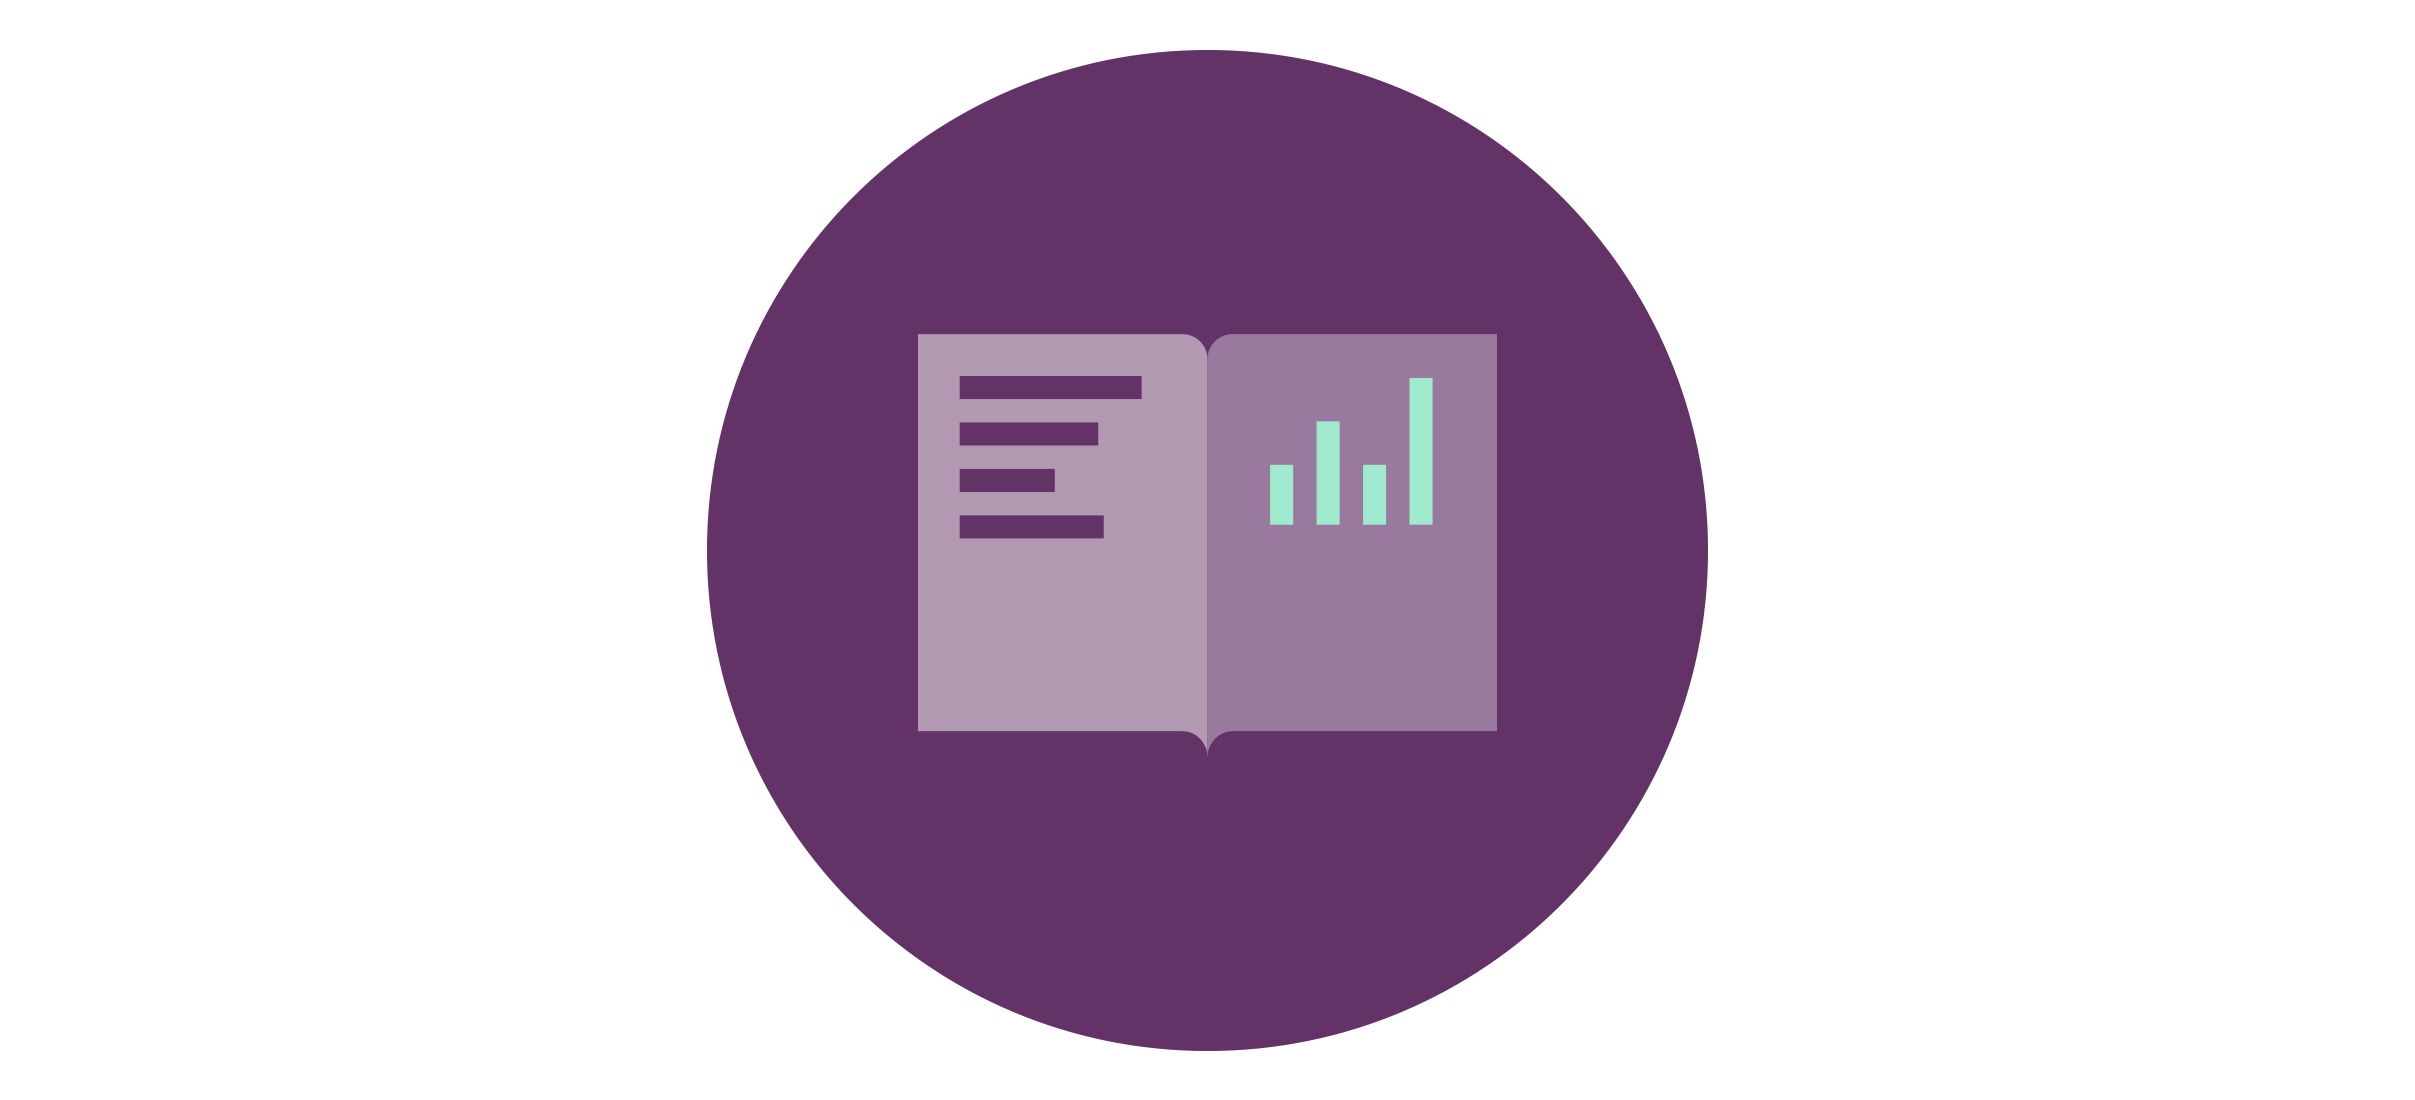 REDENLAB_ACADEMIC_HEALTH_RESEARCH_ICON.01.png